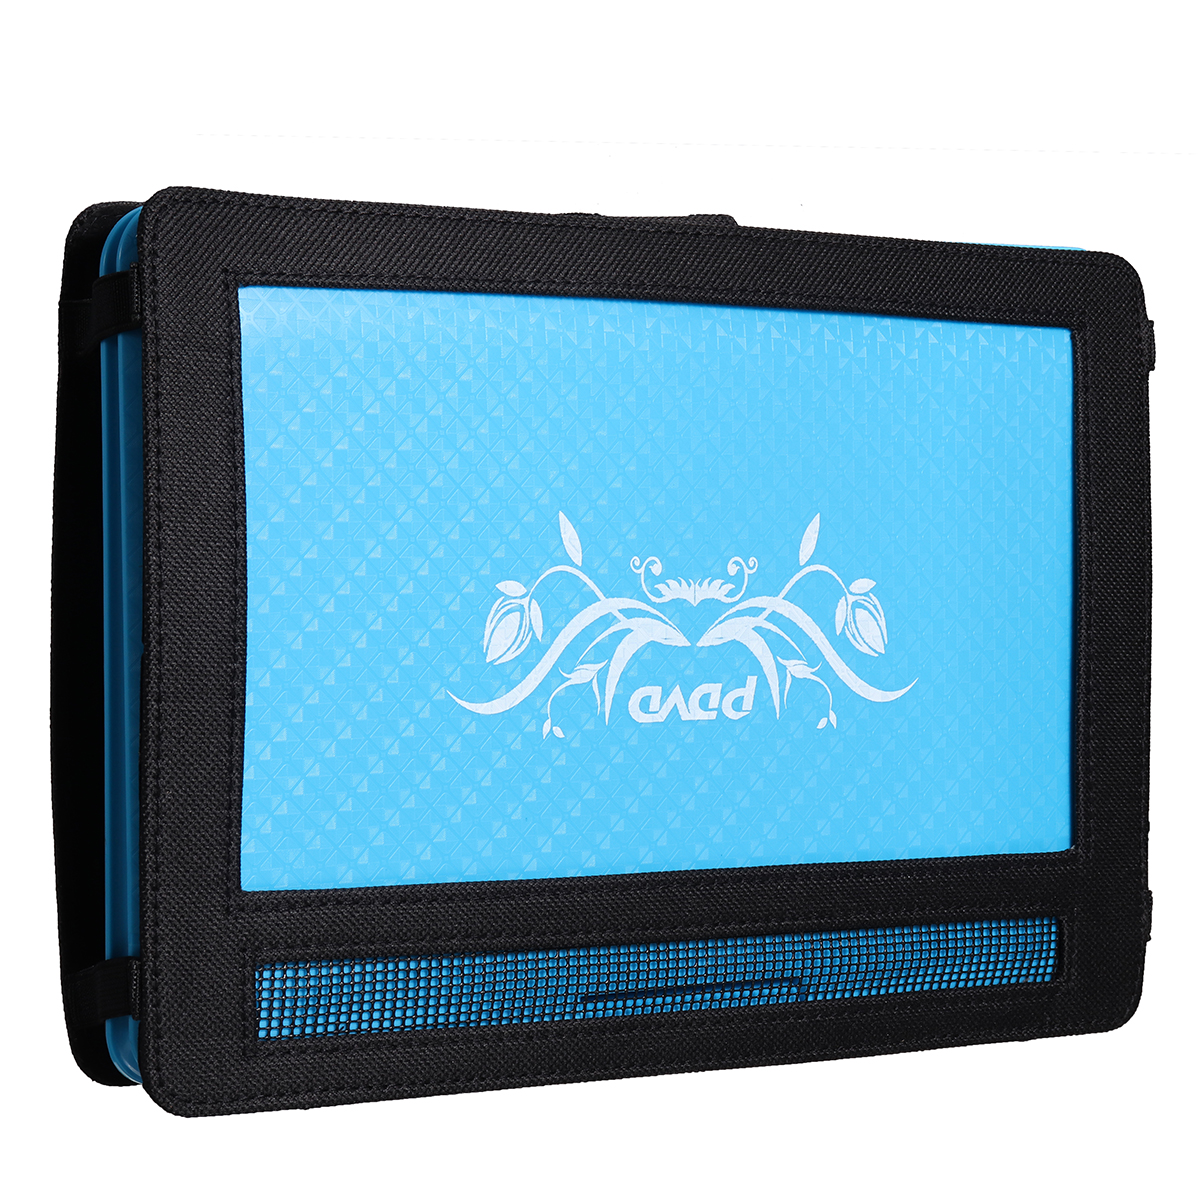 Portable 9.8 inch DVD Player Digital Car Rechargeable Player With ...